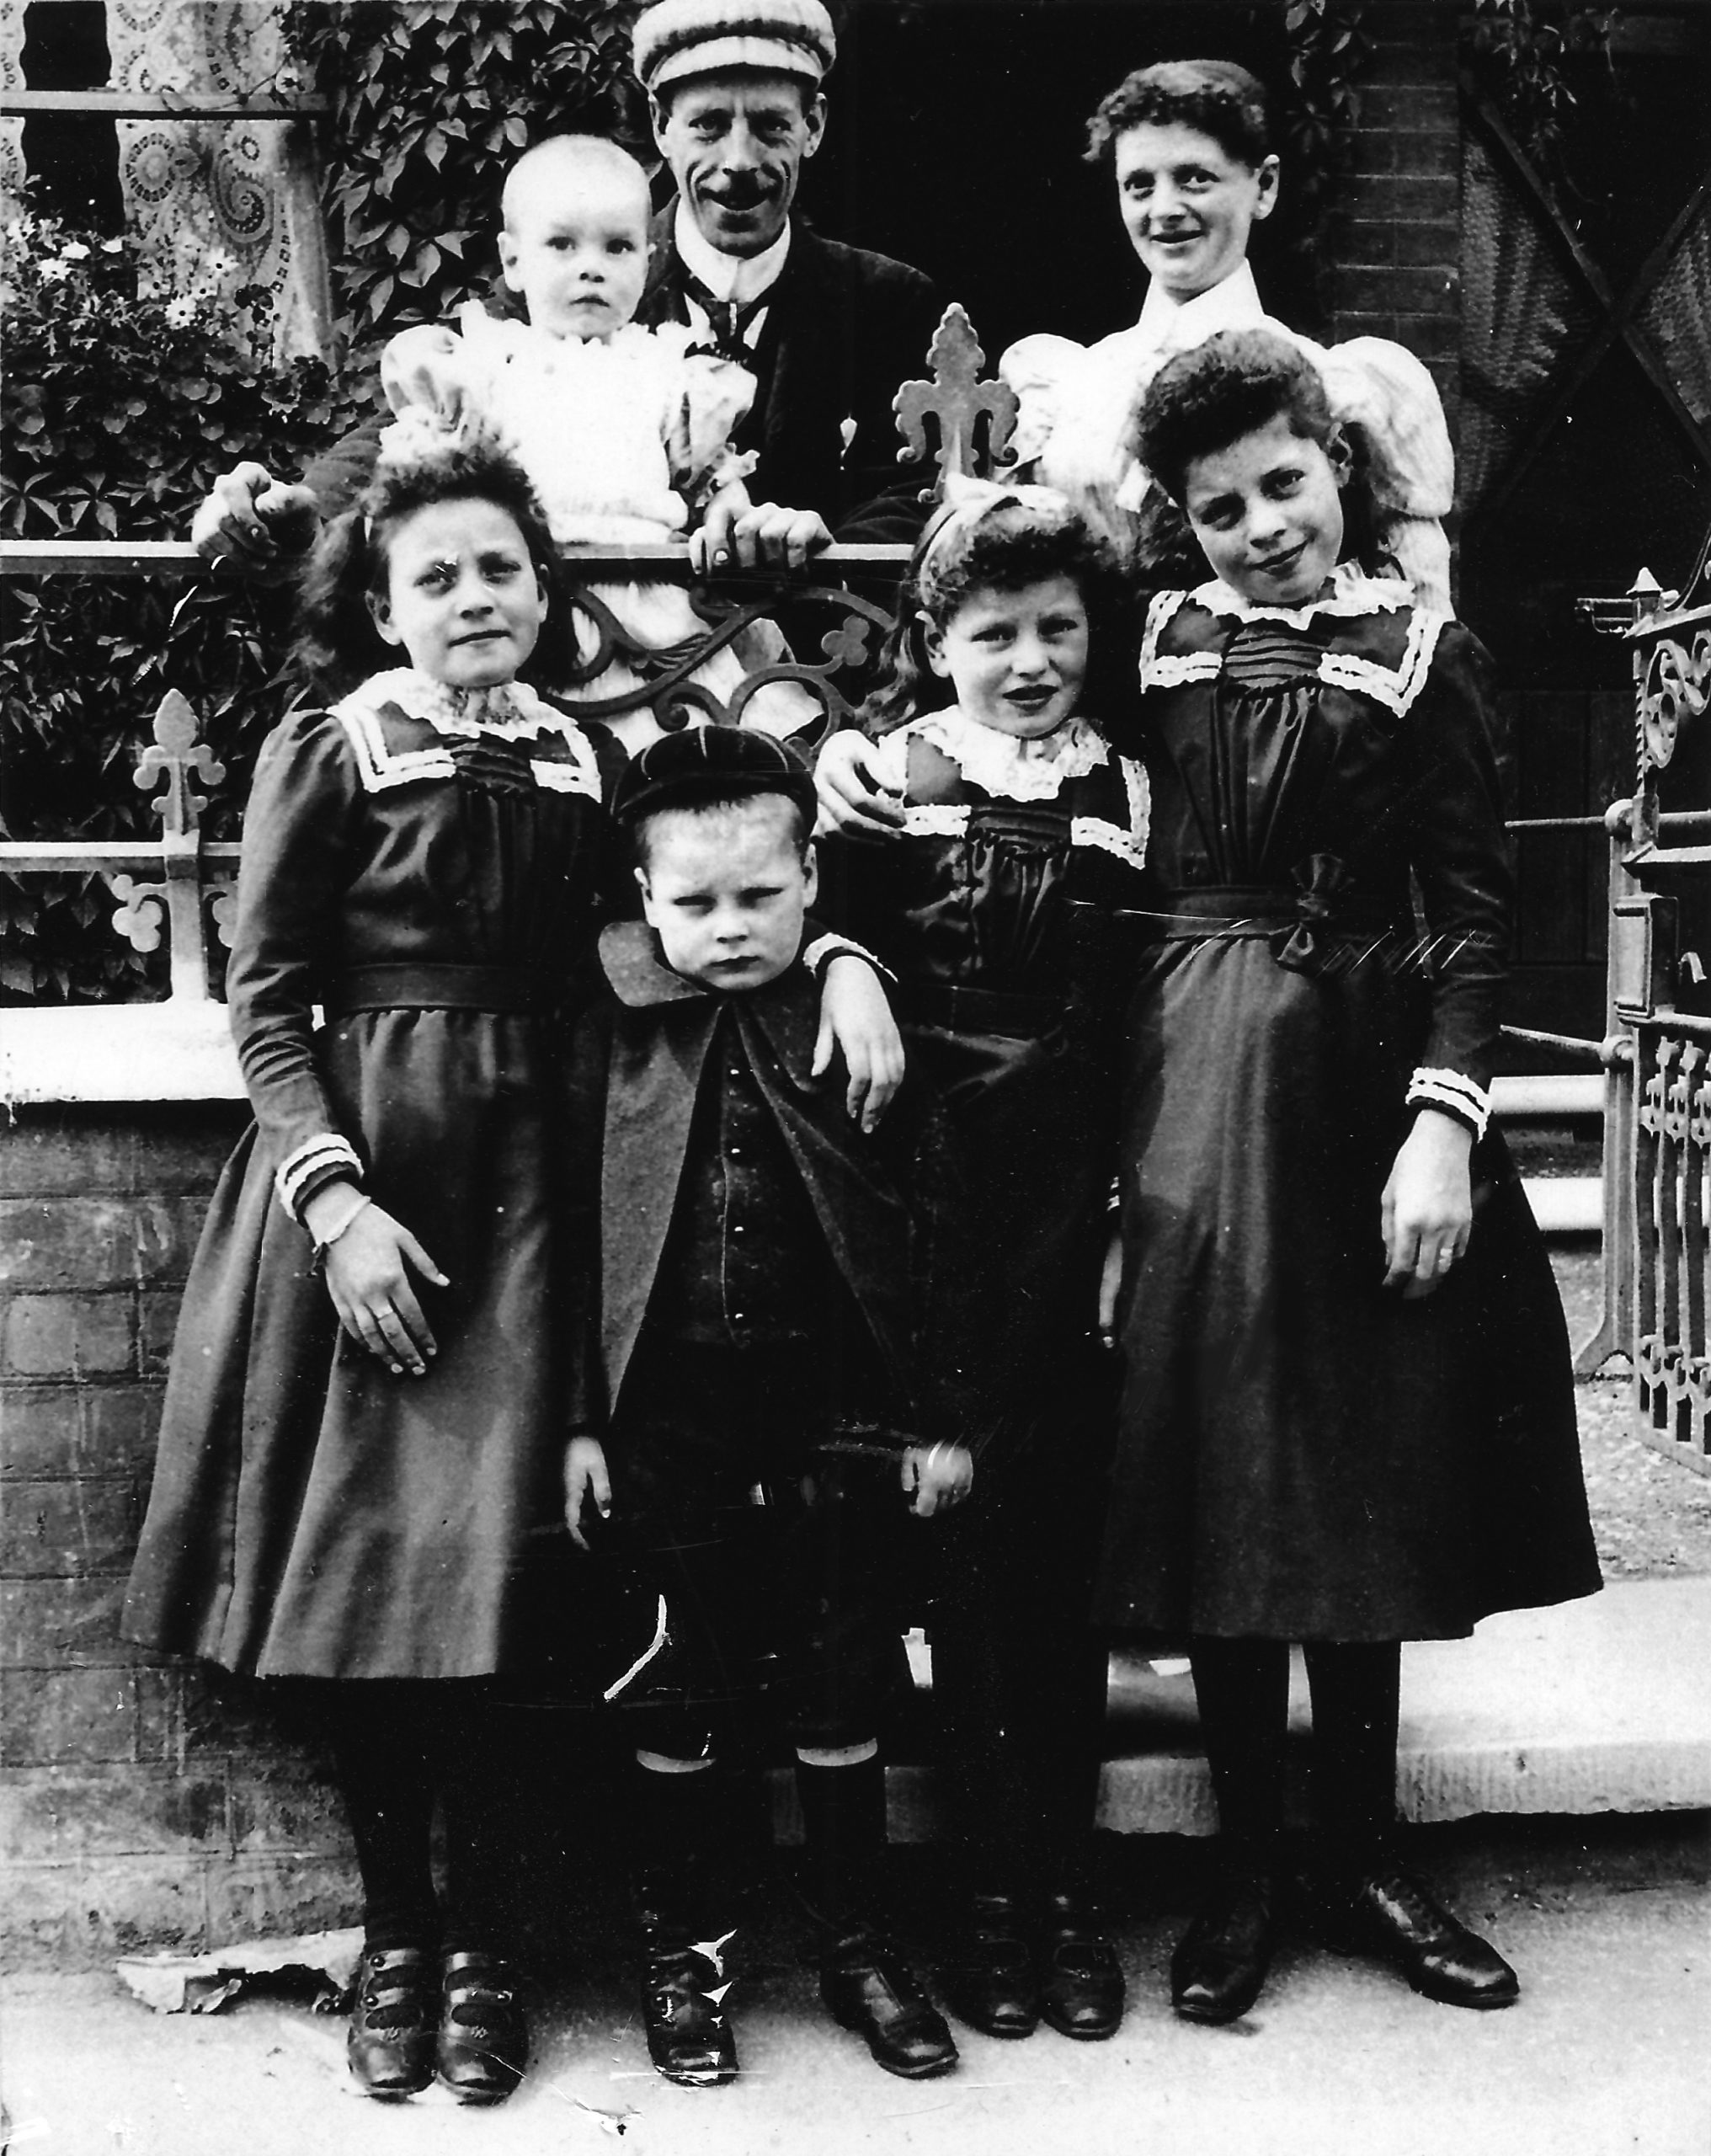 Samuel Rowbottom and his Family, copyright Michael Lewis